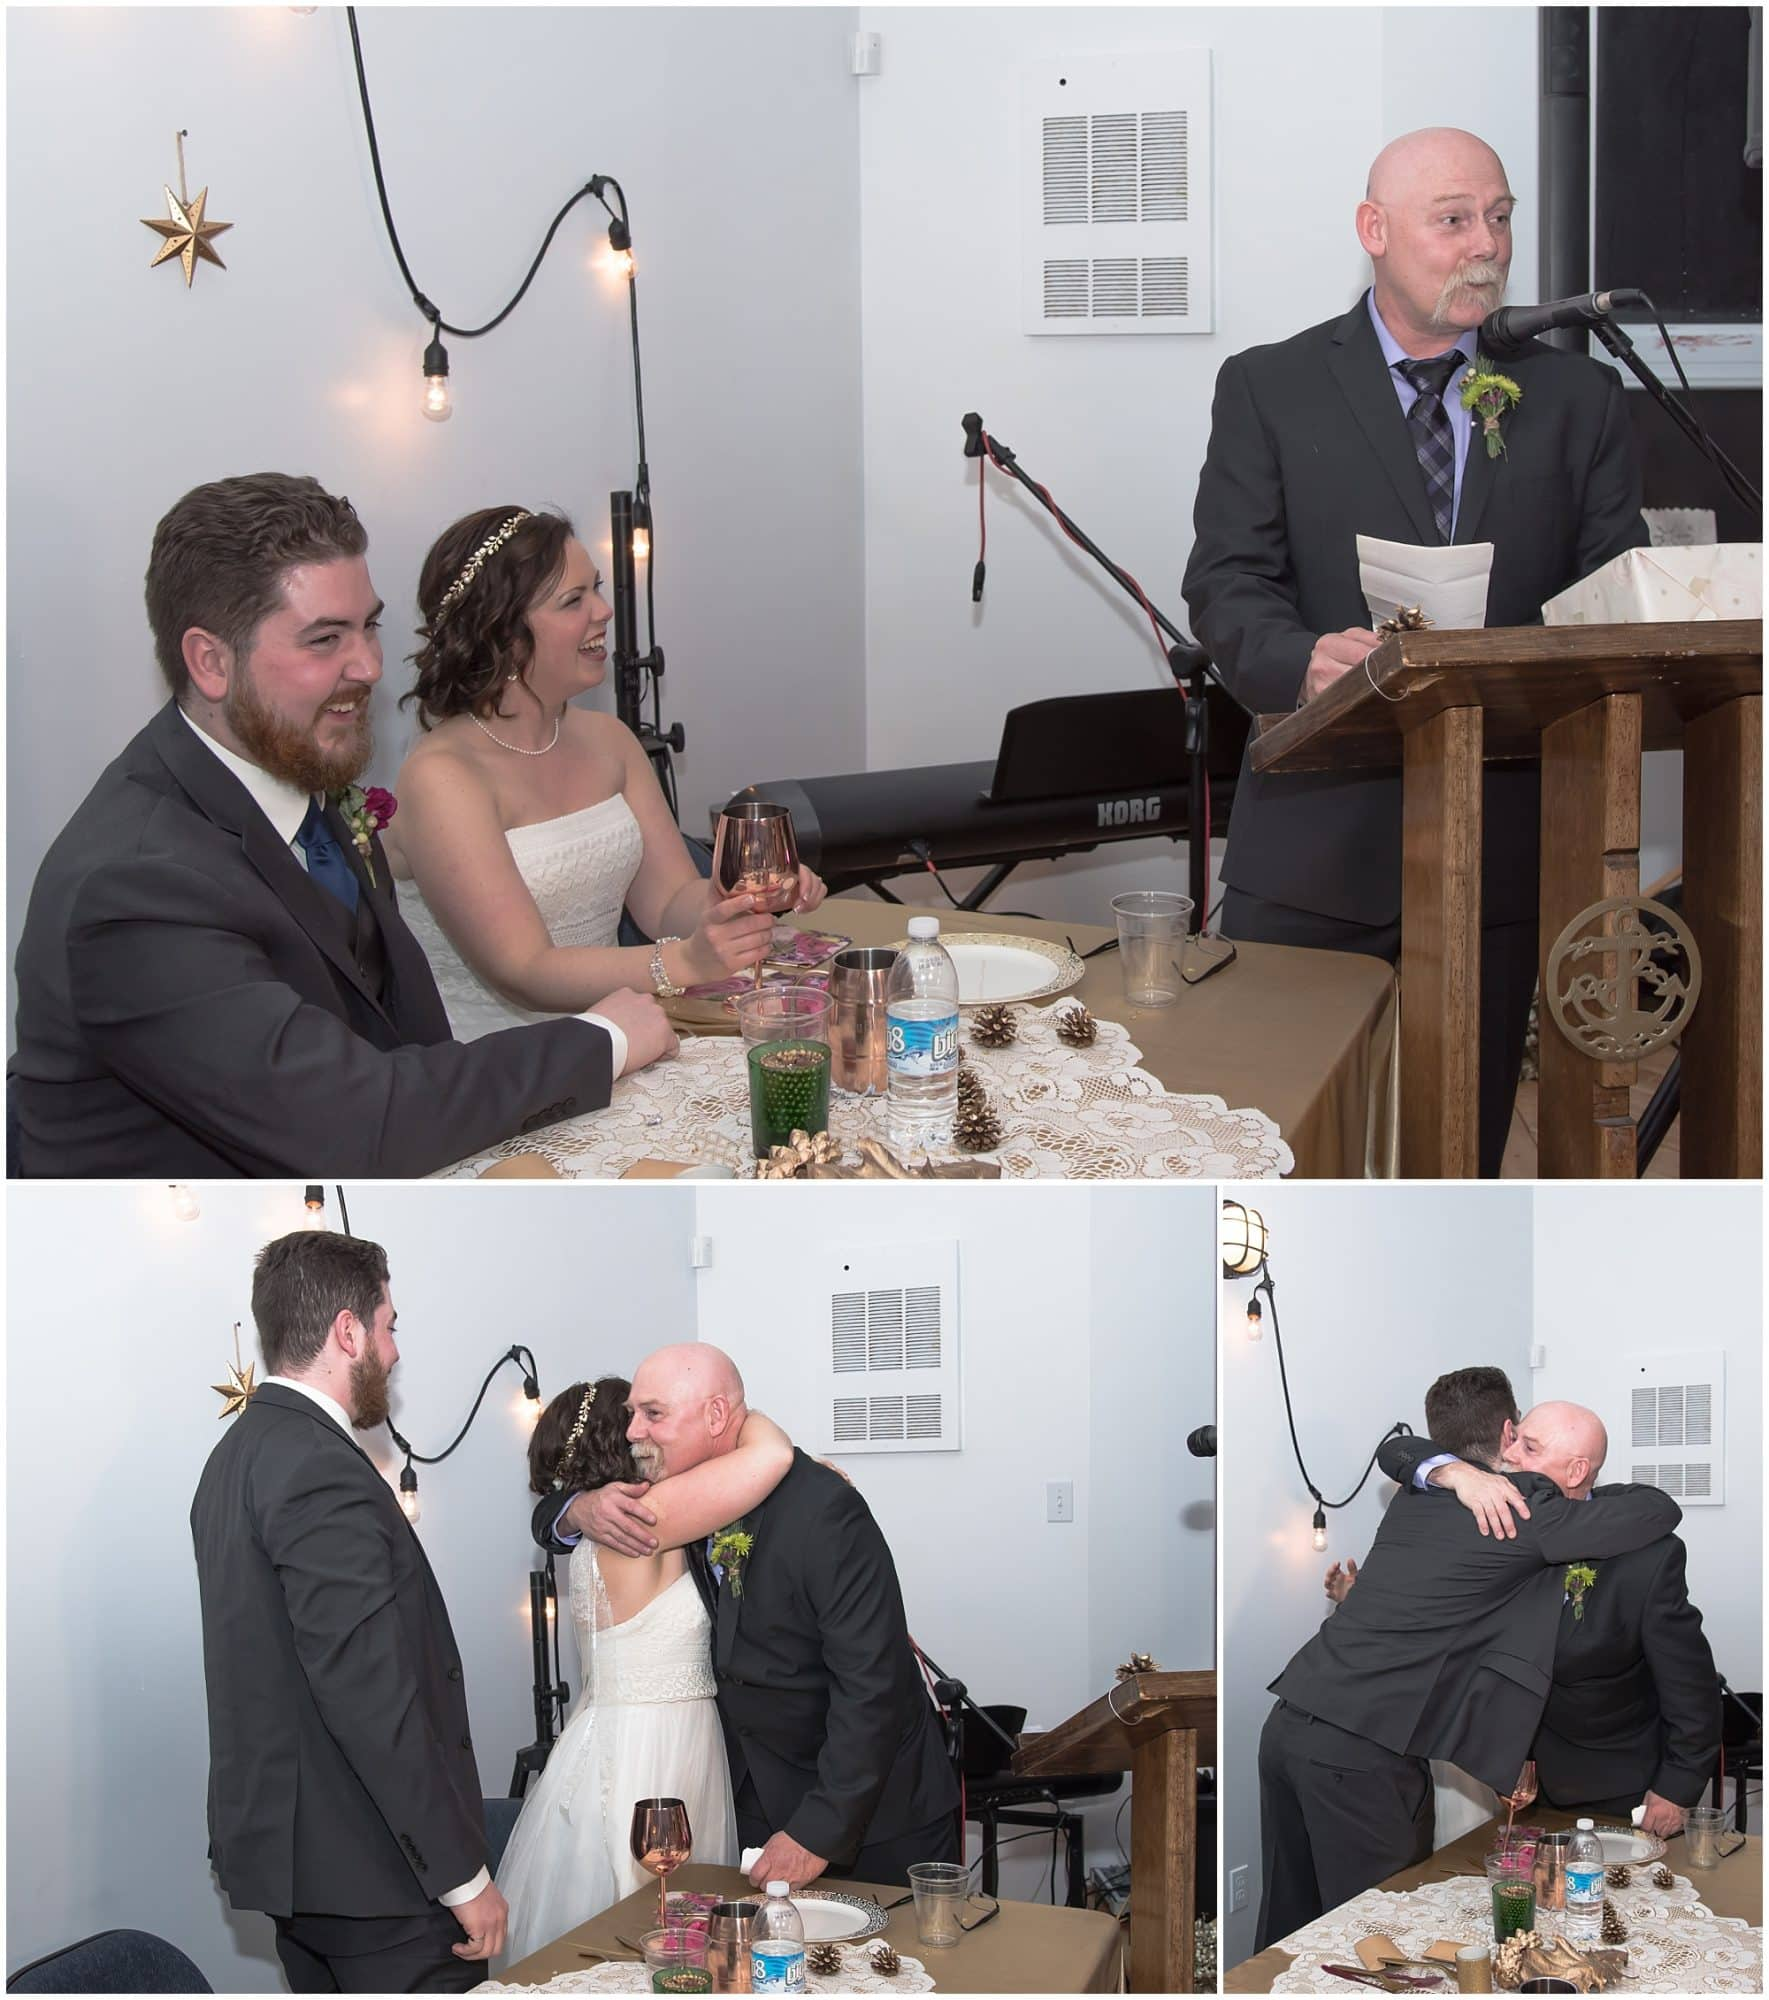 The father of the bride toasts the bride and groom during their wedding at Fisherman's Cove in Eastern Passage, NS.